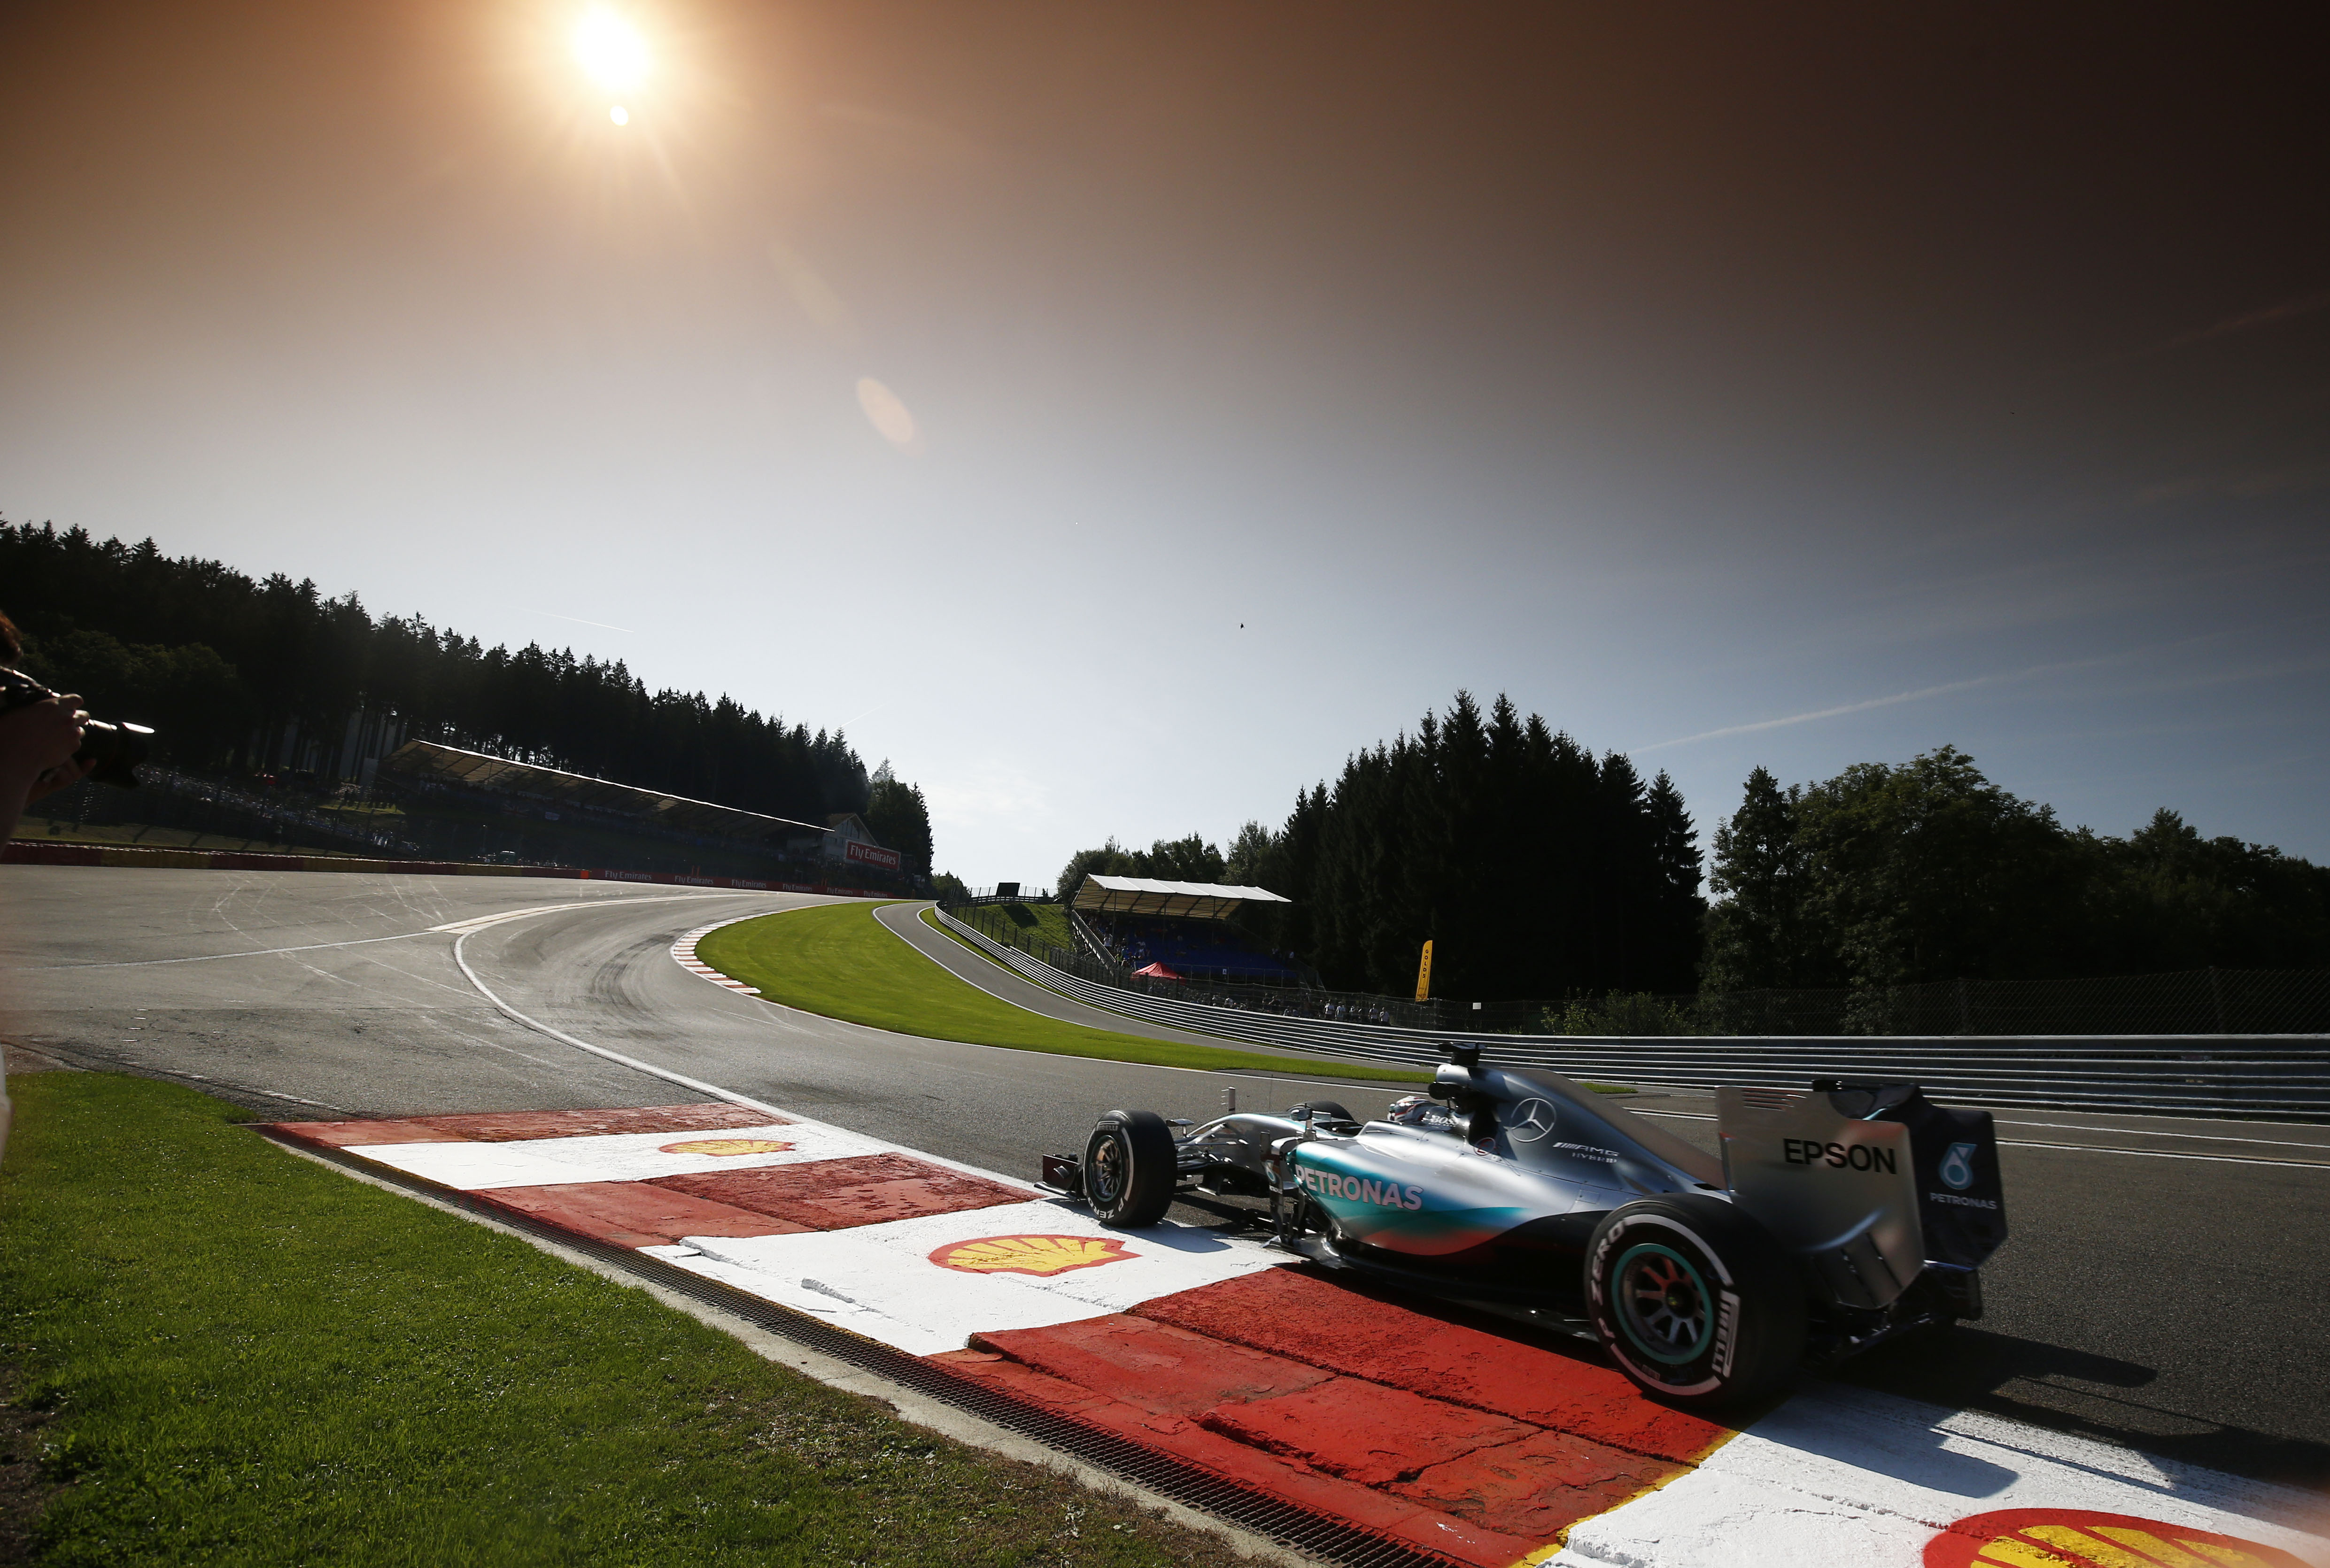 Lewis Hamilton in Au Rouge at Spa in his Mercedes W06